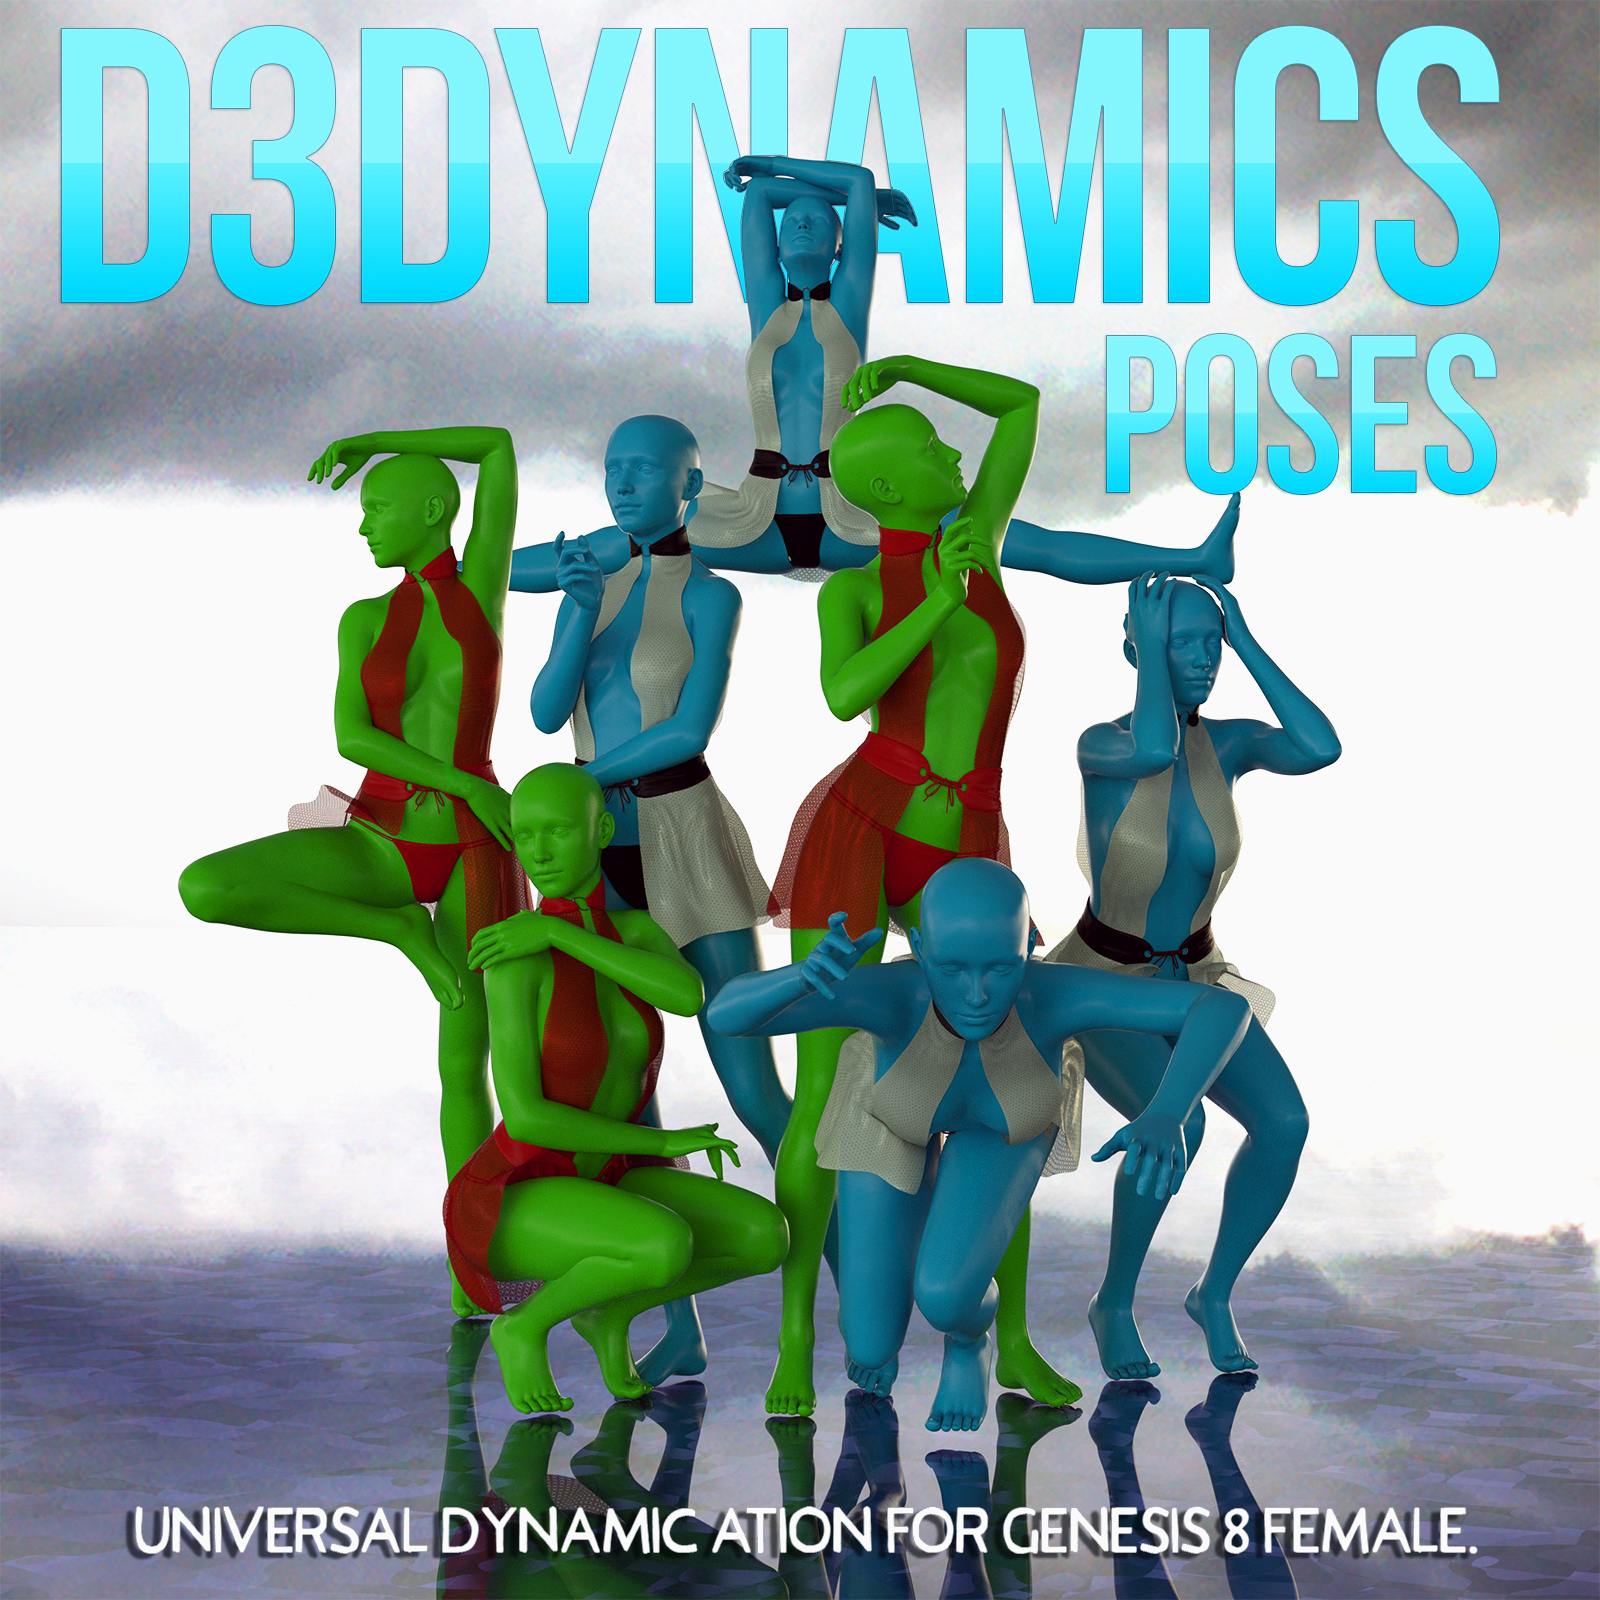 D3Dynamics Poses Volume 1 by Disciple3d